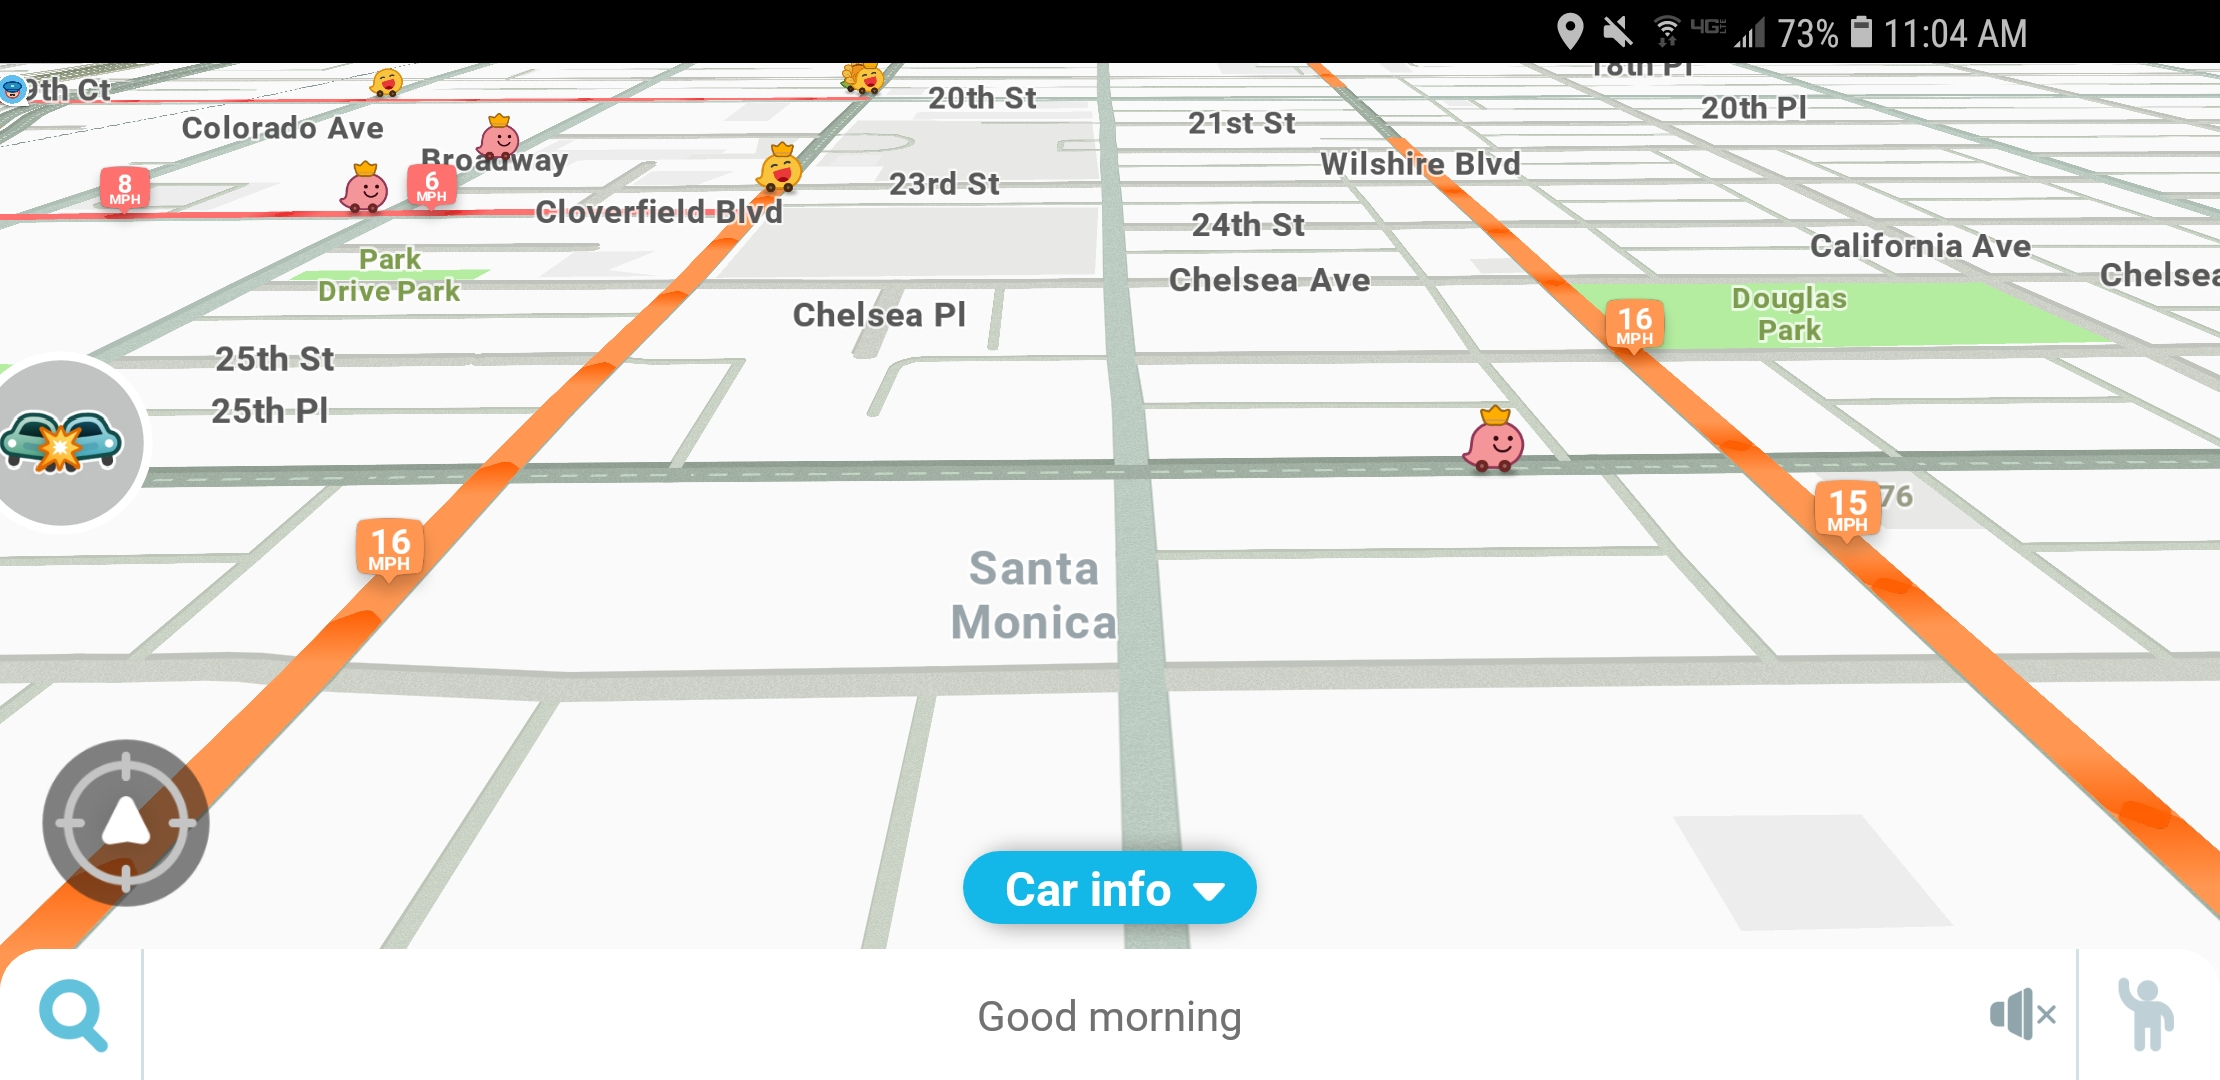 Waze users' accident reports could cut emergency response time in half